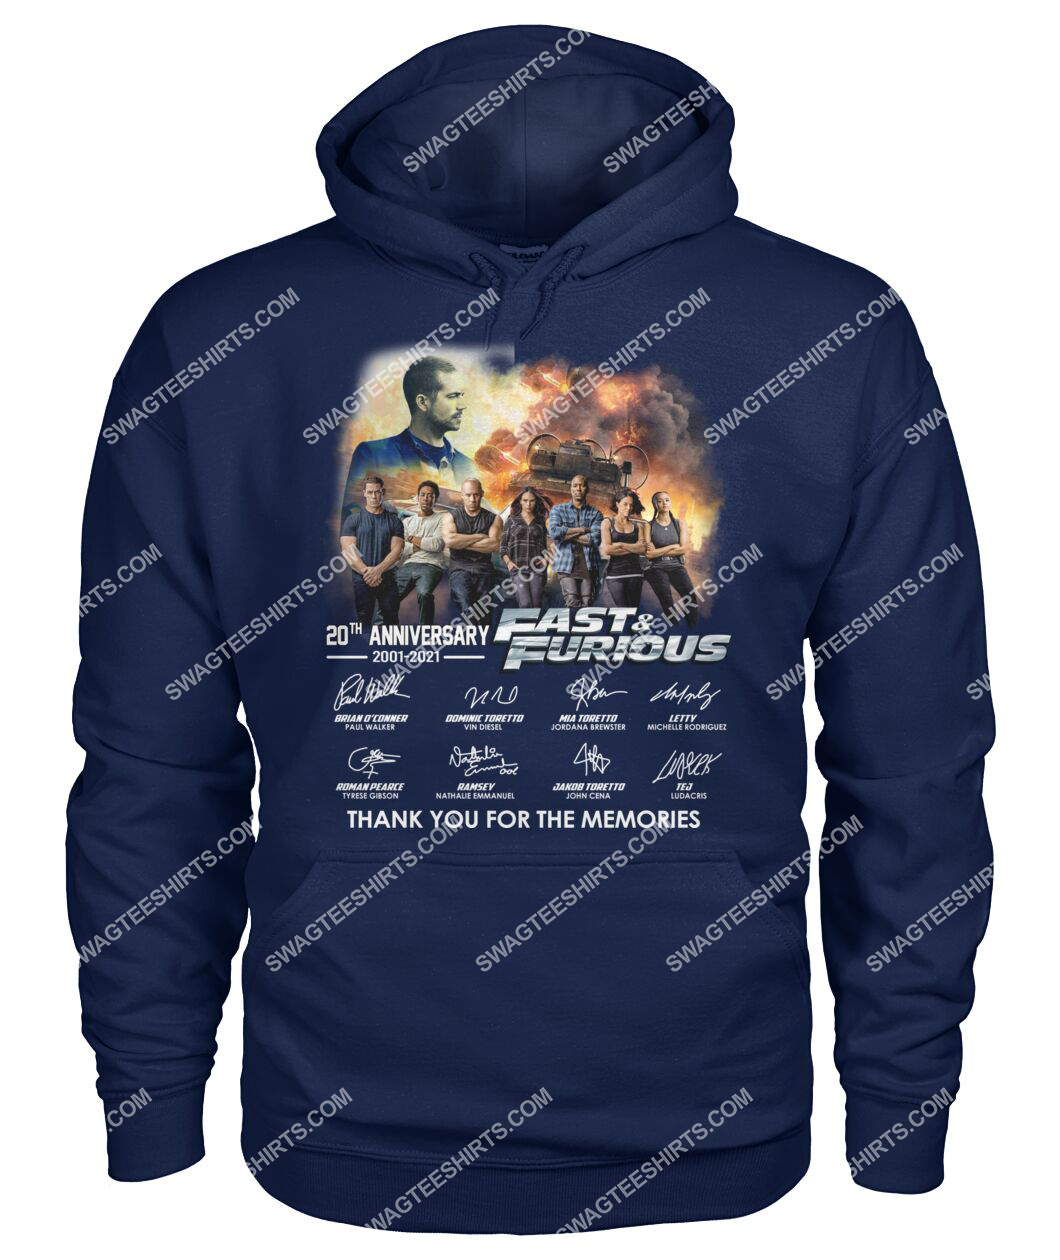 20th anniversary fast and furious thank you for memories hoodie 1